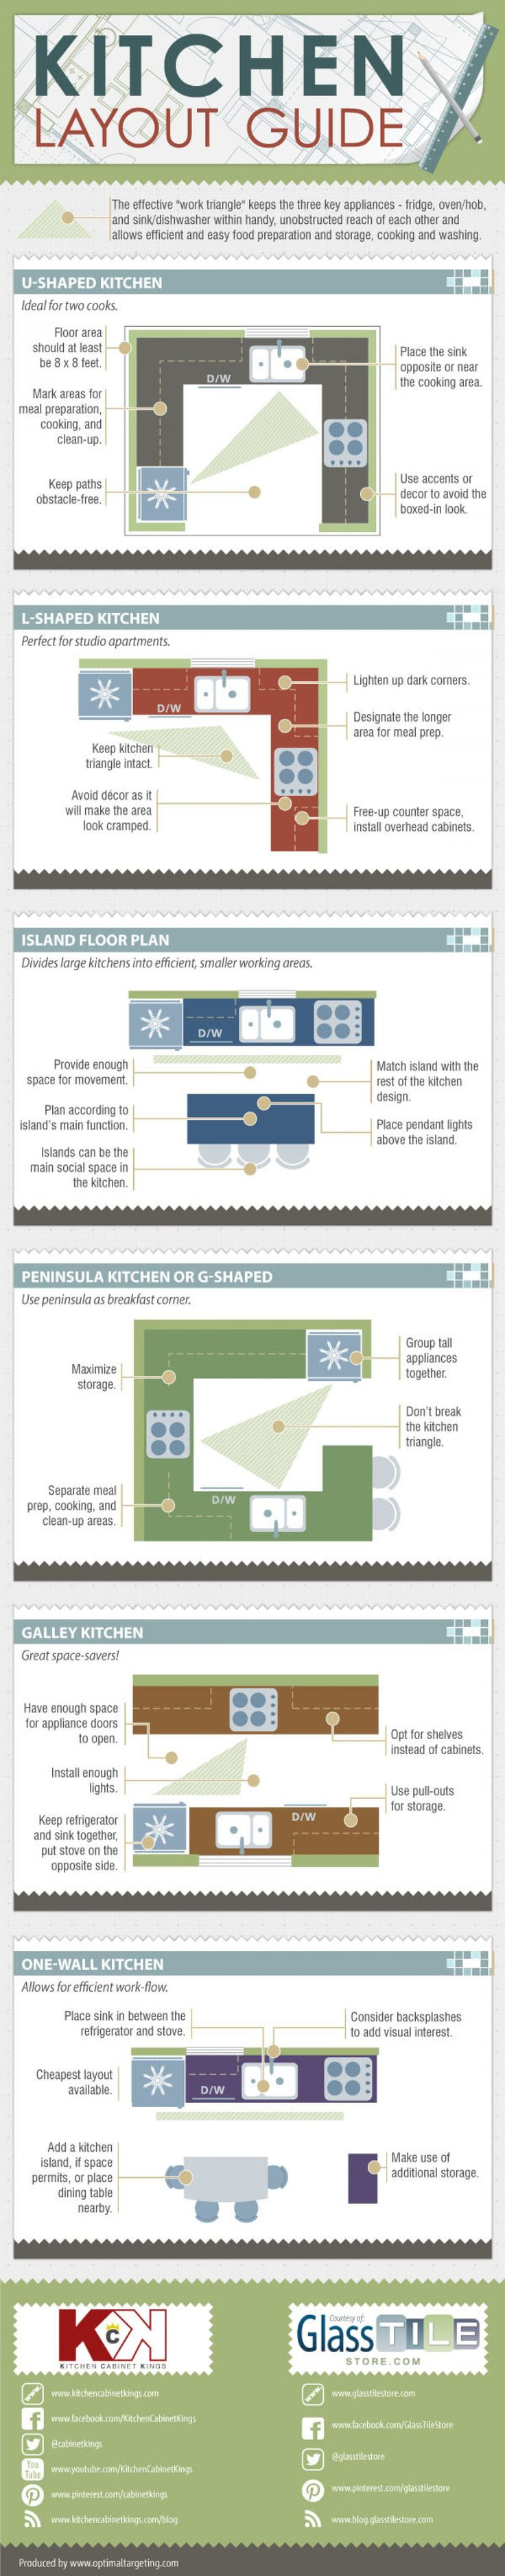 kitchen layout guide infographic kitchen pinterest